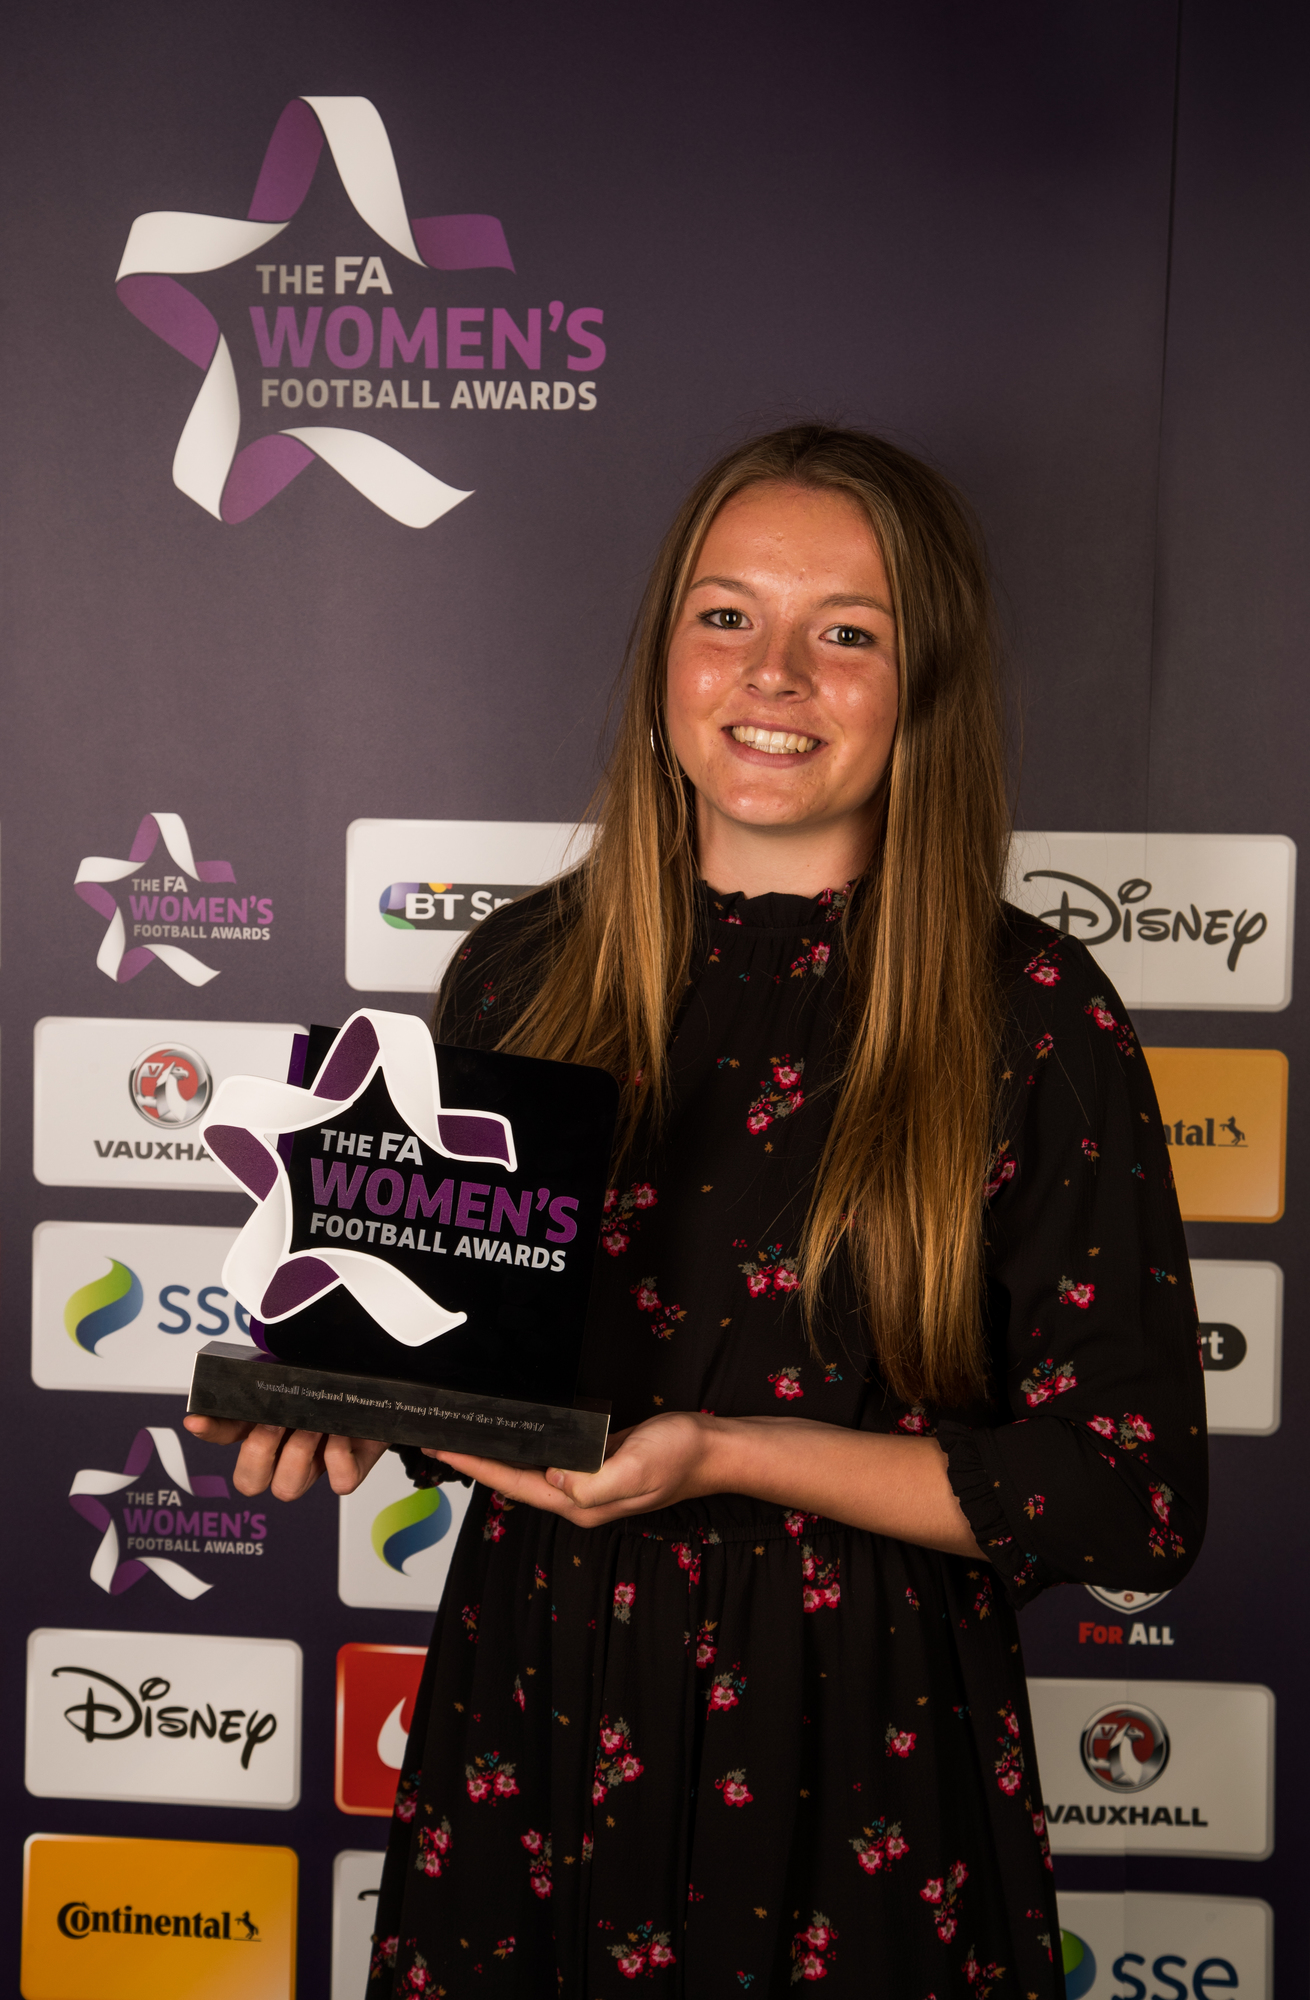 Lauren Hemp claimed her prize at the FA Women's Football Awards in central London